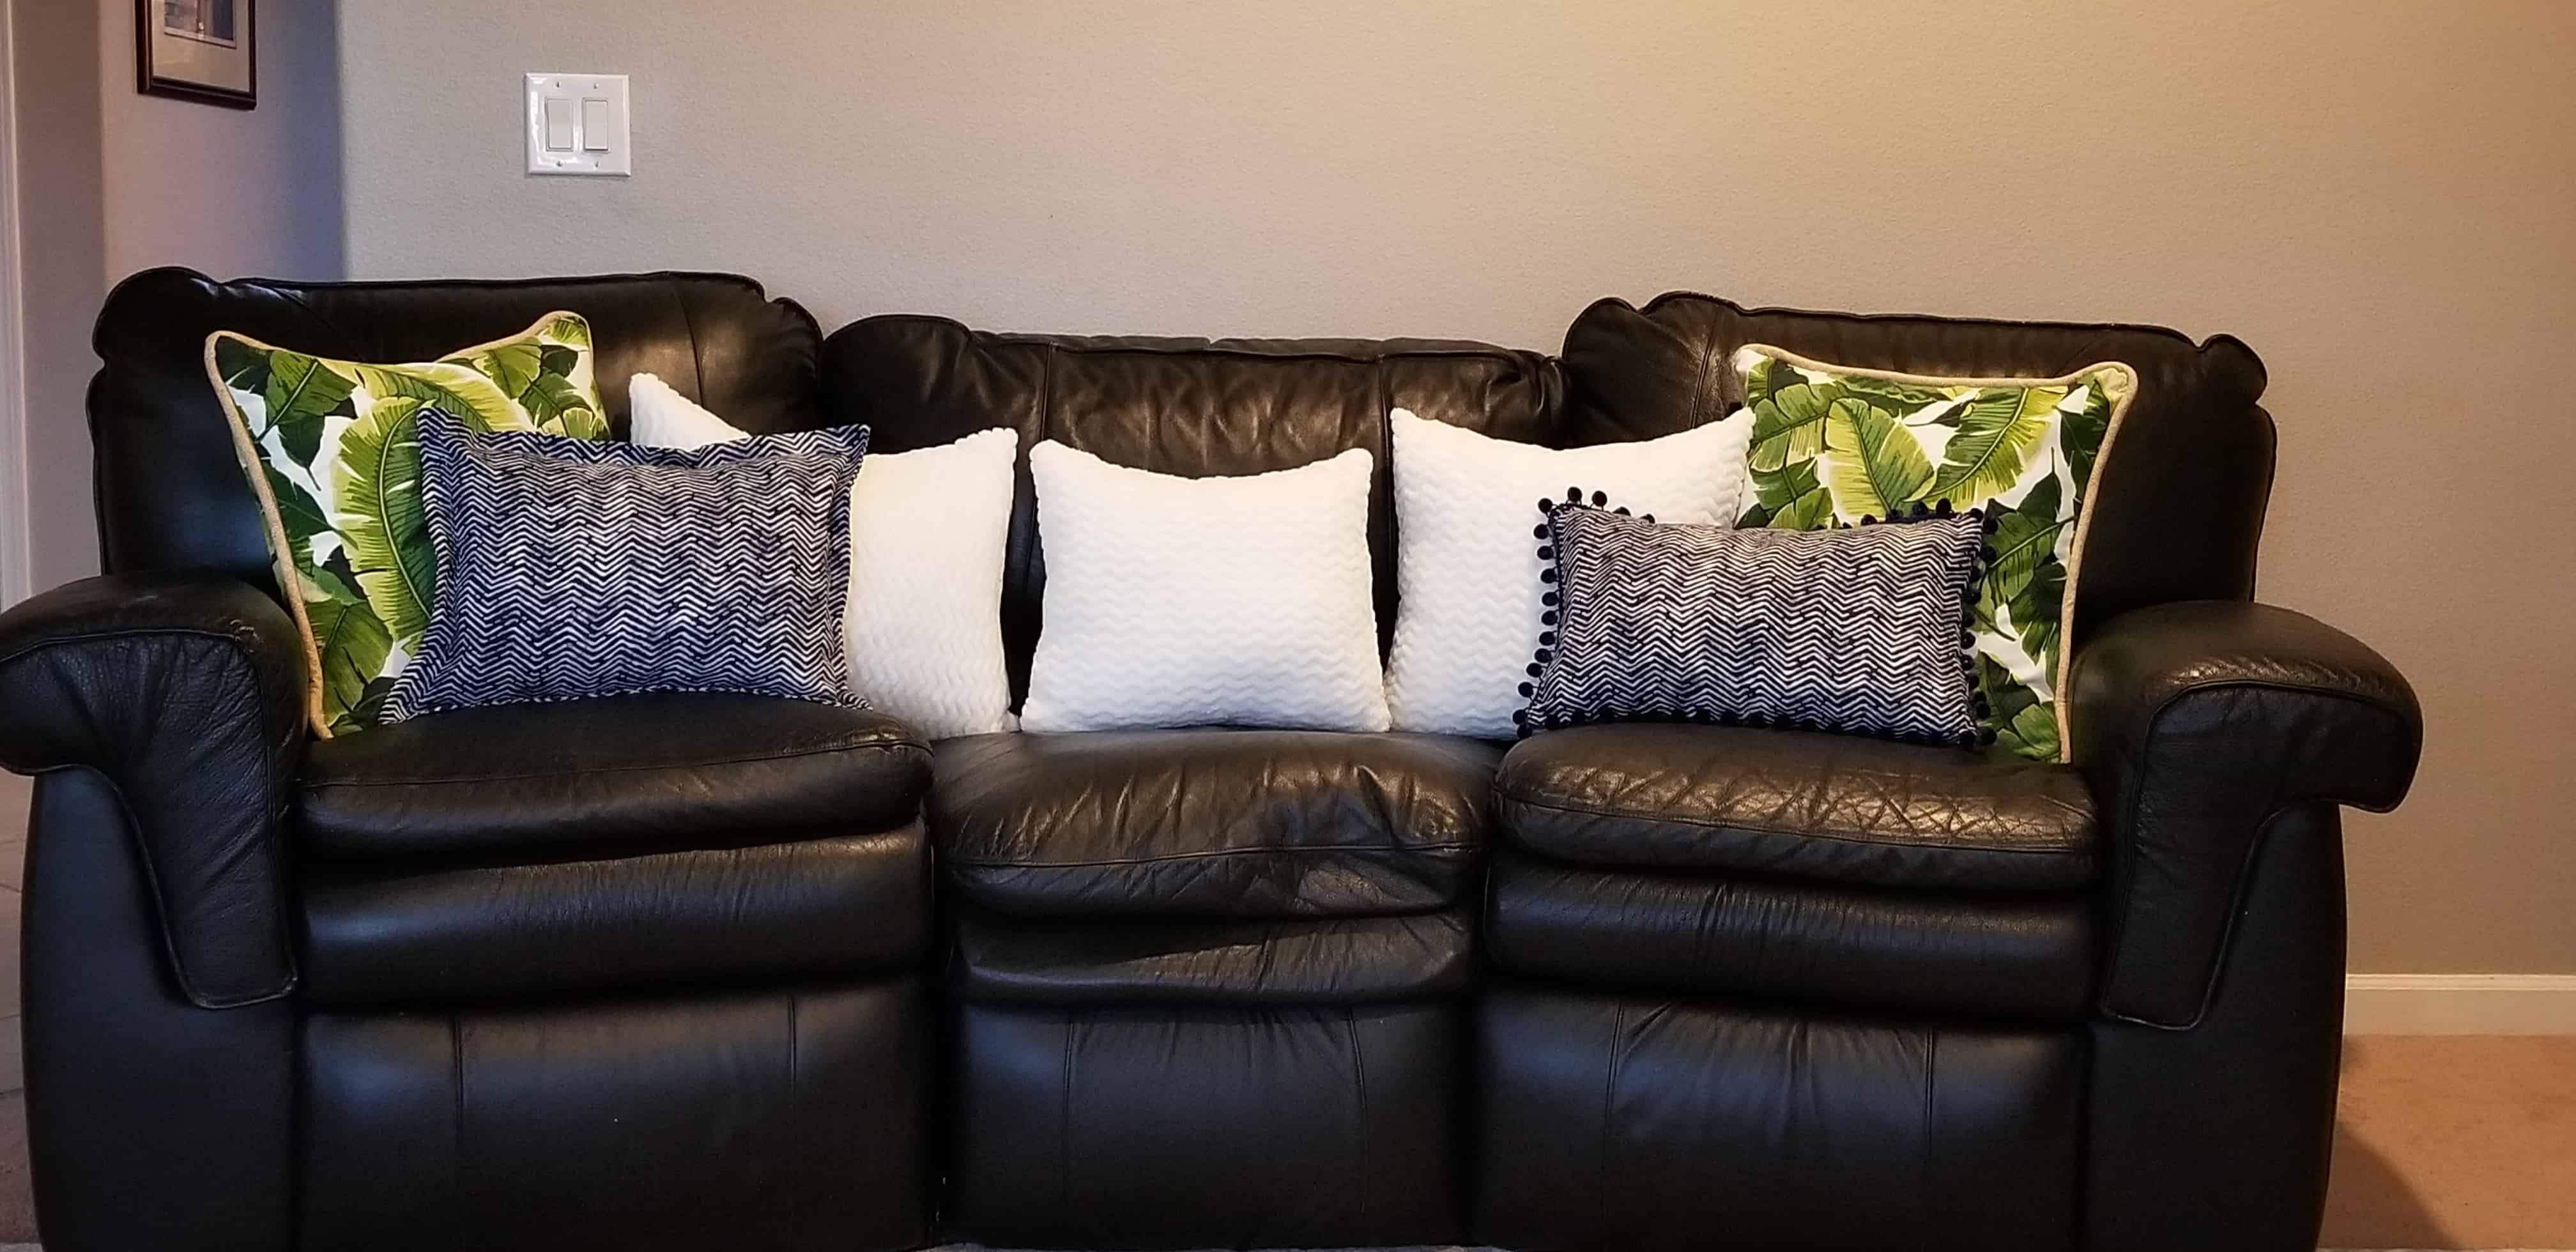 seven pillows on a black couch